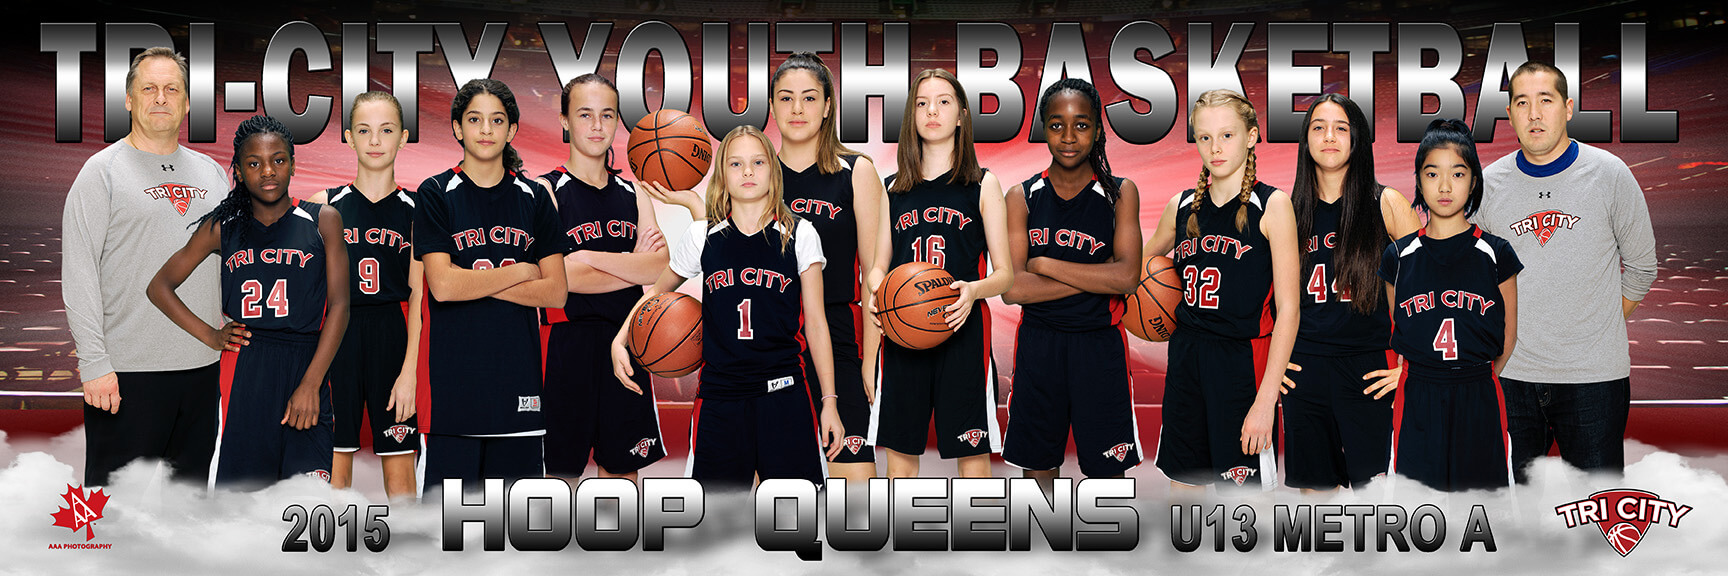 Rep Team 2015 - Hoop Queens - 003